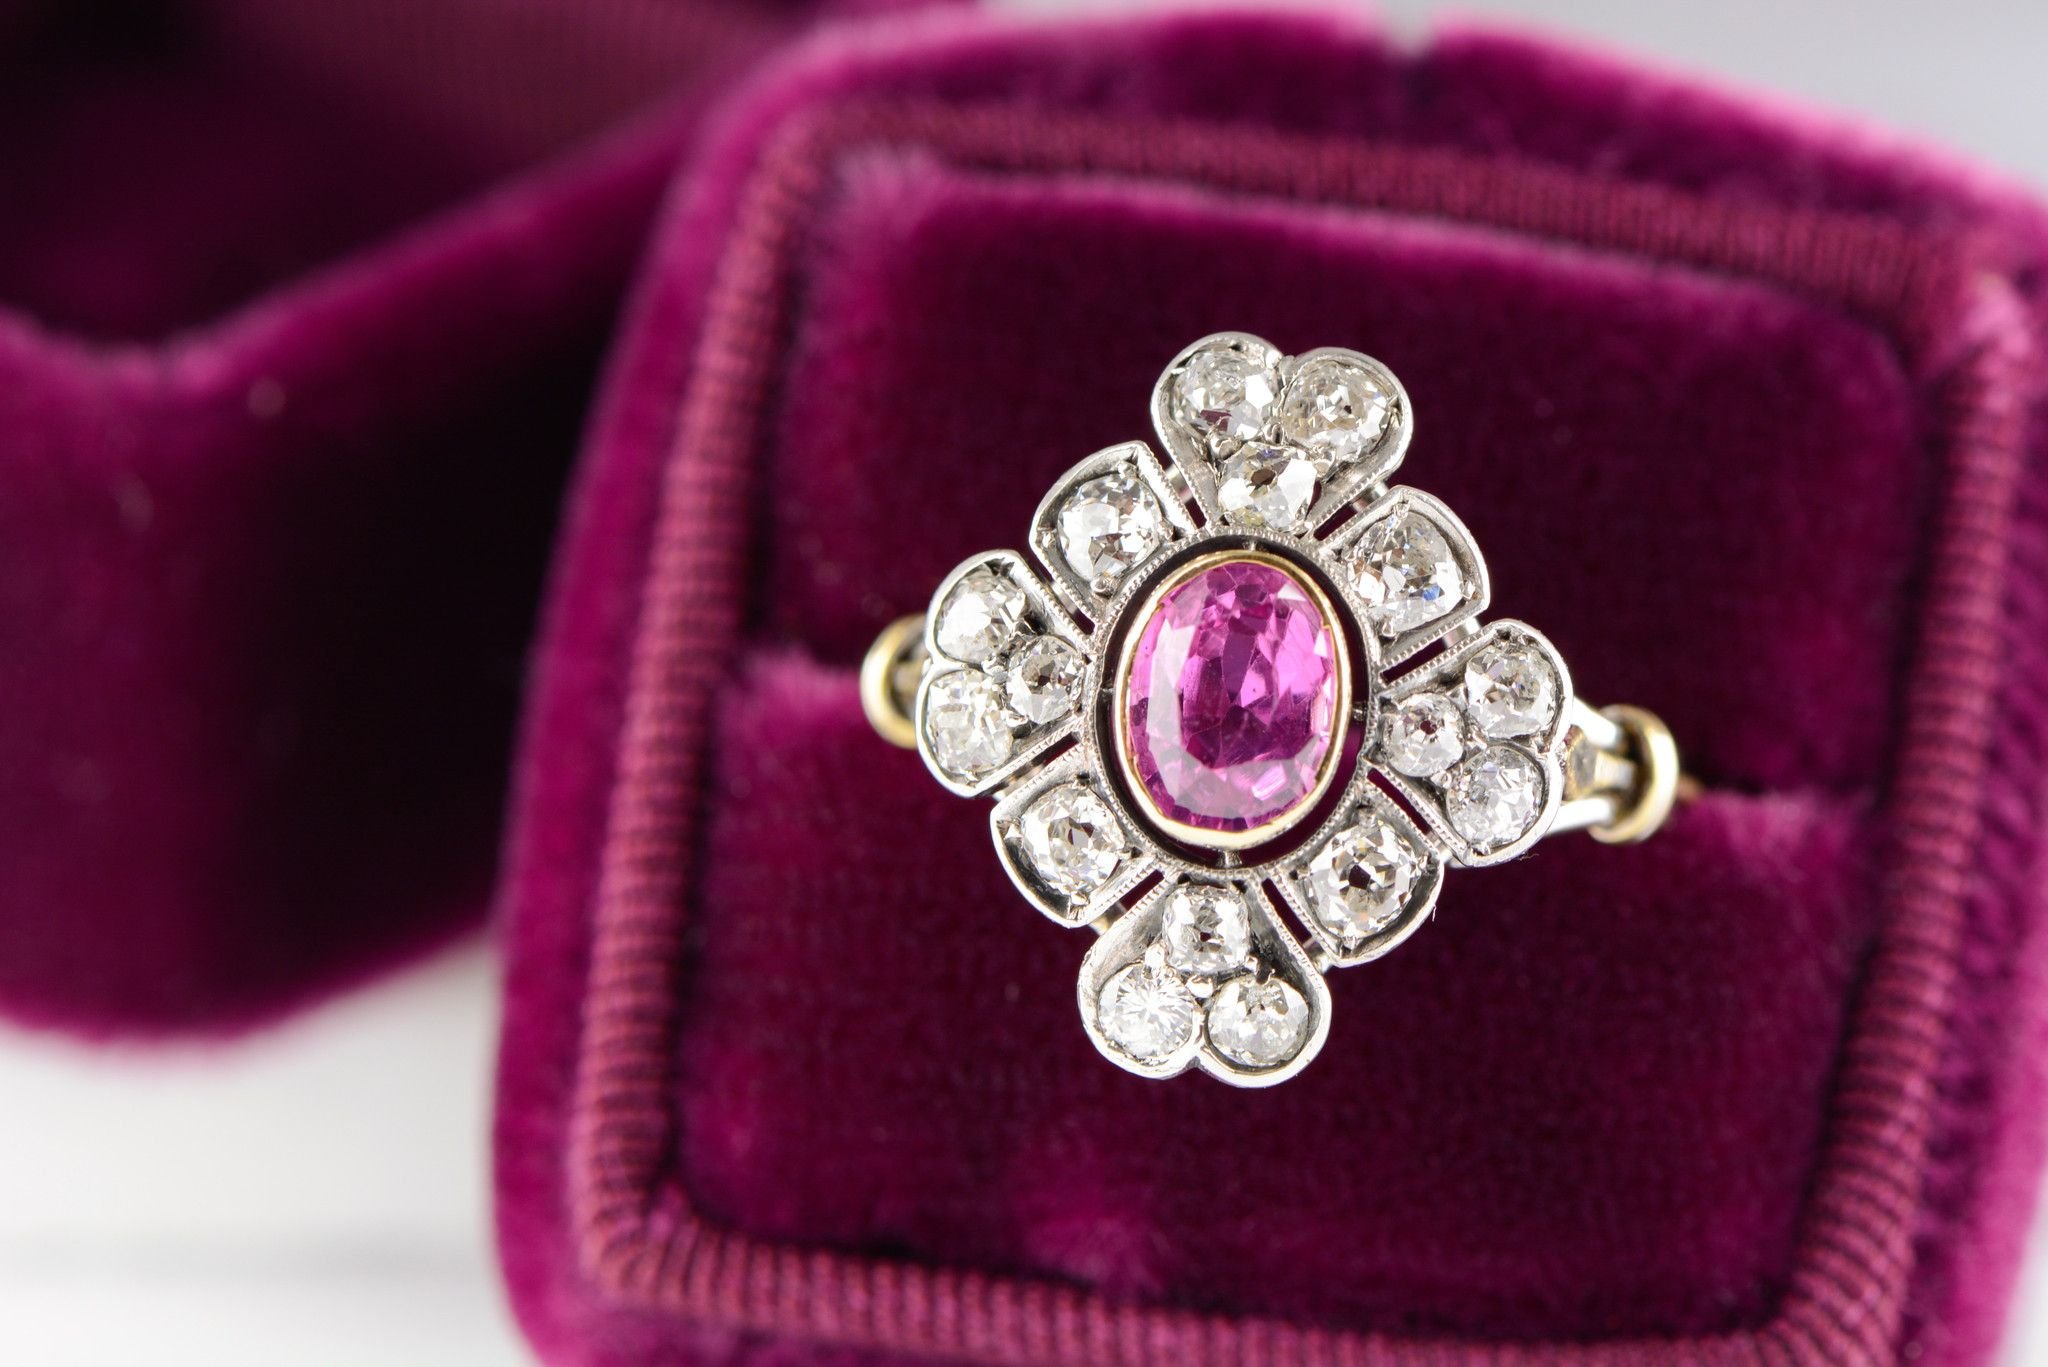 1.50 ctw Victorian; Pre-Art Deco Pink Sapphire / Ruby and Old Mine Cut Diamond Cluster Engagement, Cocktail, or Anniversary Ring